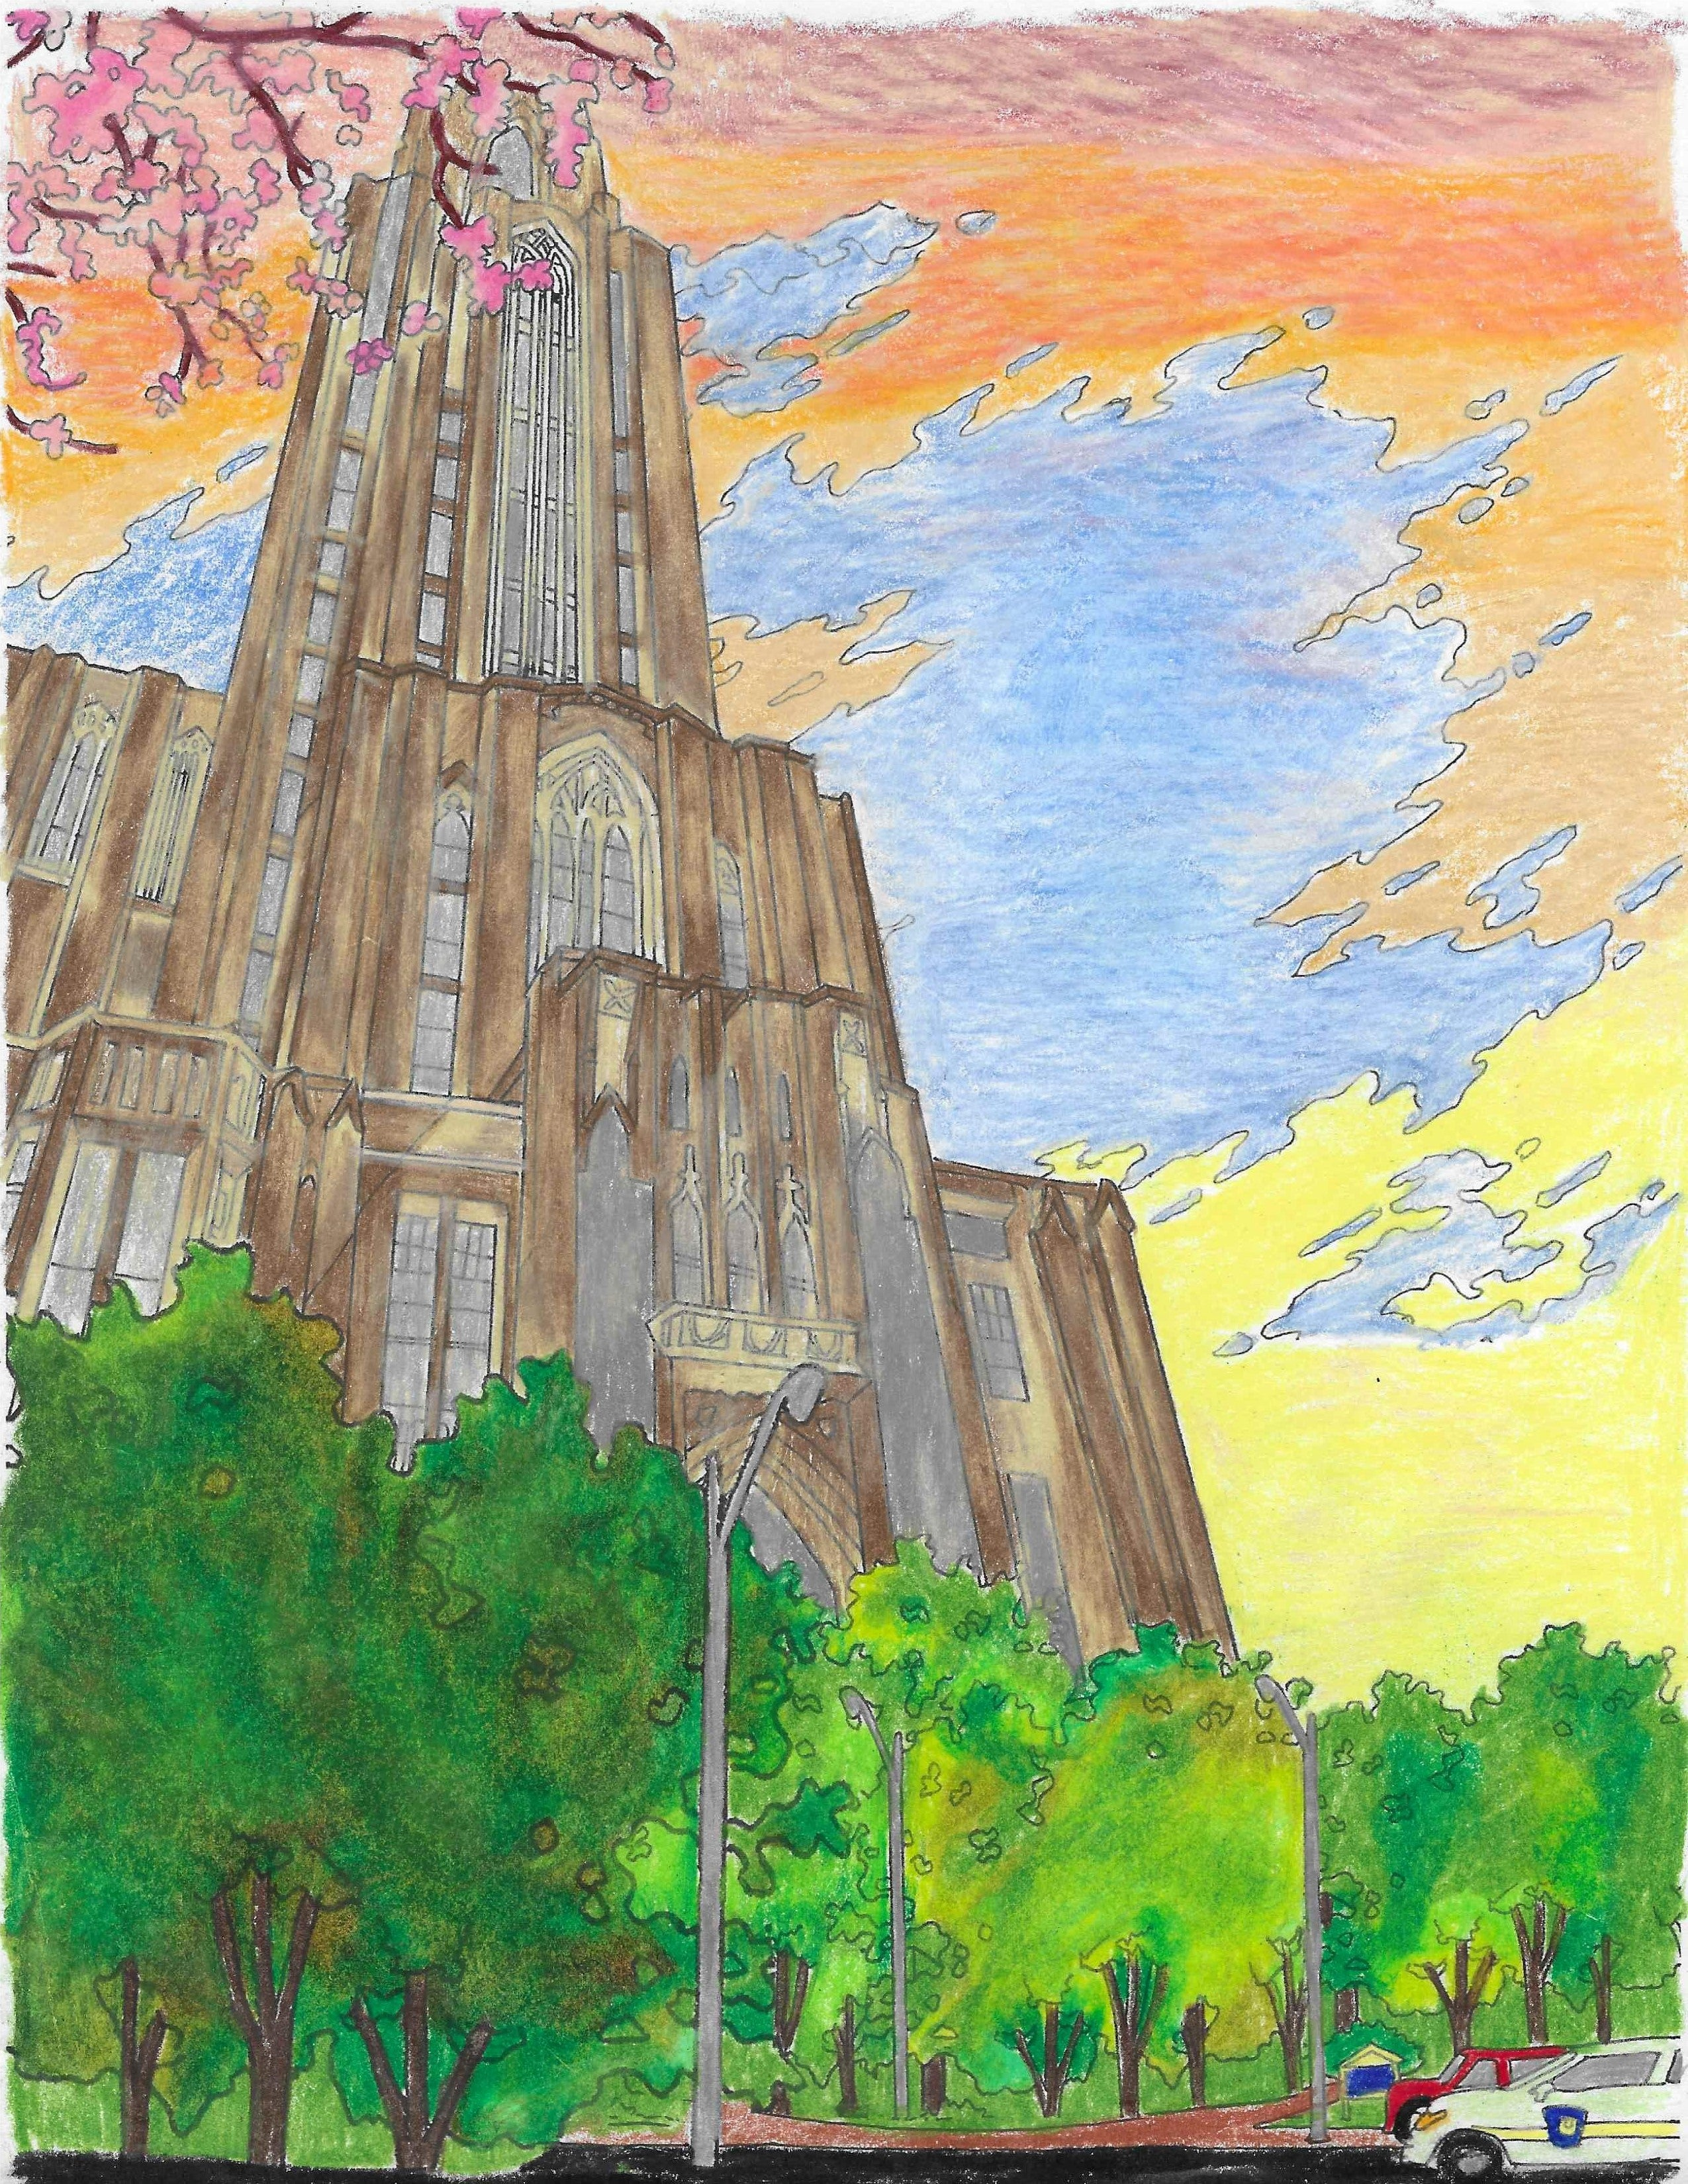 Cathedral of Learning at dawn or dusk, drawn with colored pencils